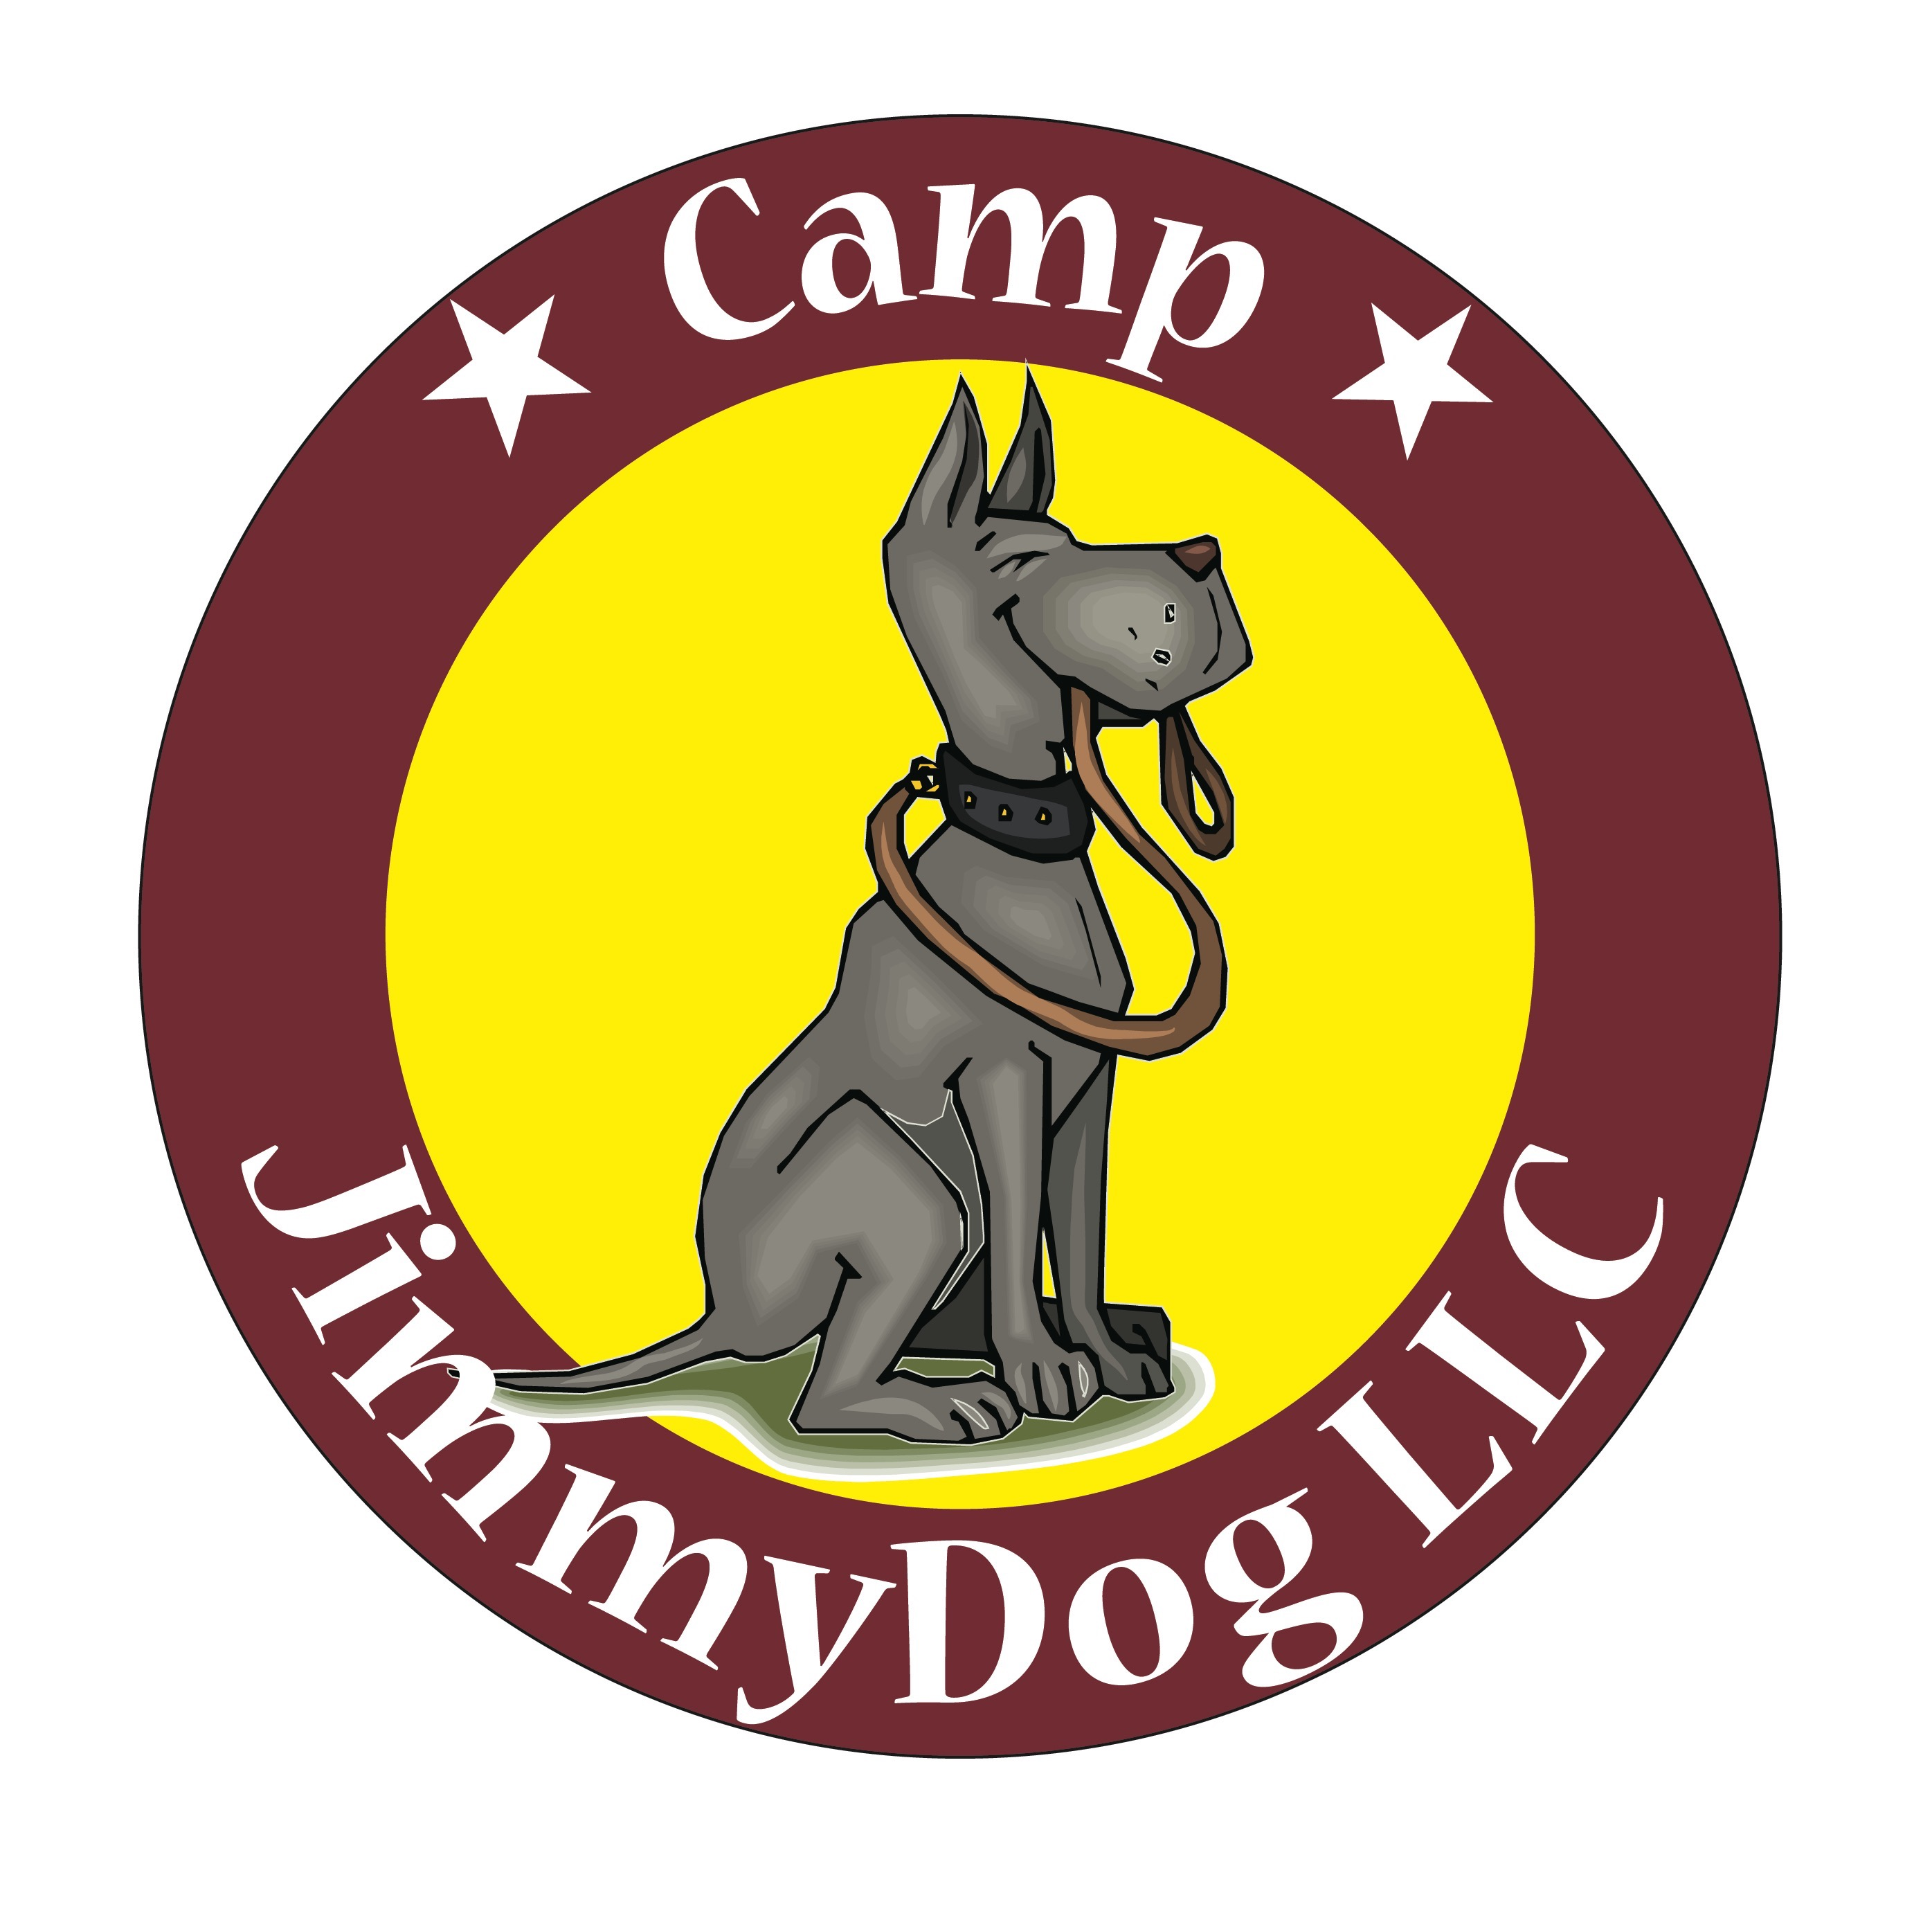 Camp Jimmydog